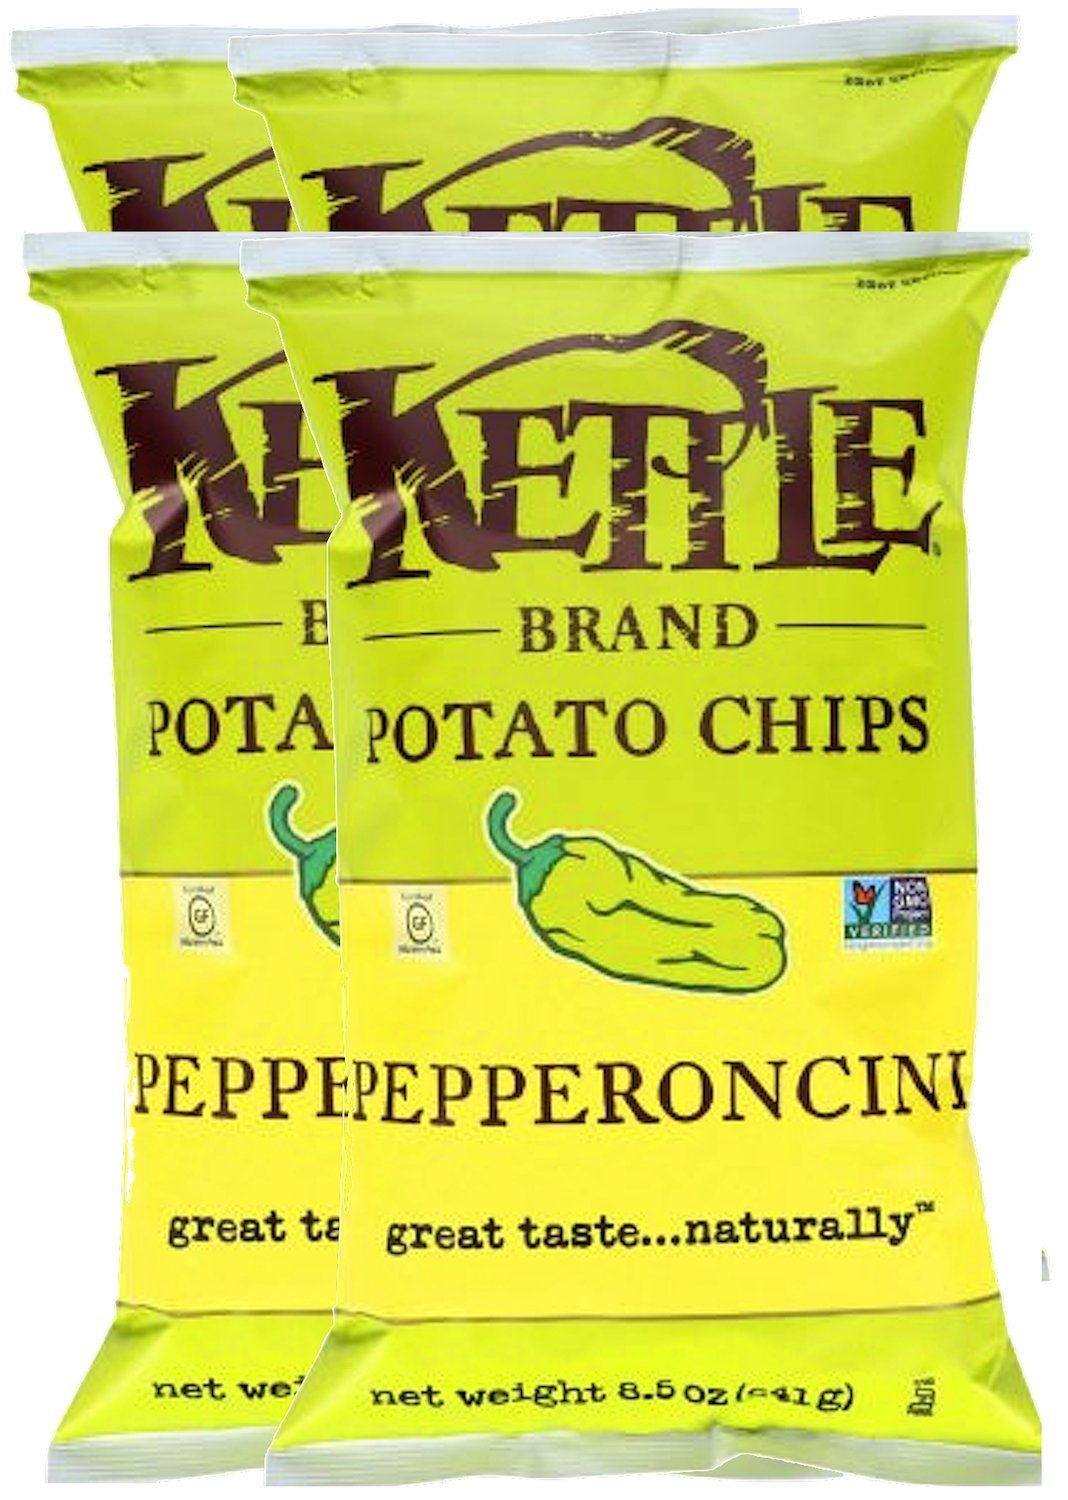 Kettle Brand Kettle Gluten Free Chips Pepperoncini 8.5oz Snack Care Package for College, Military, Sports (4) by Kettle Brand